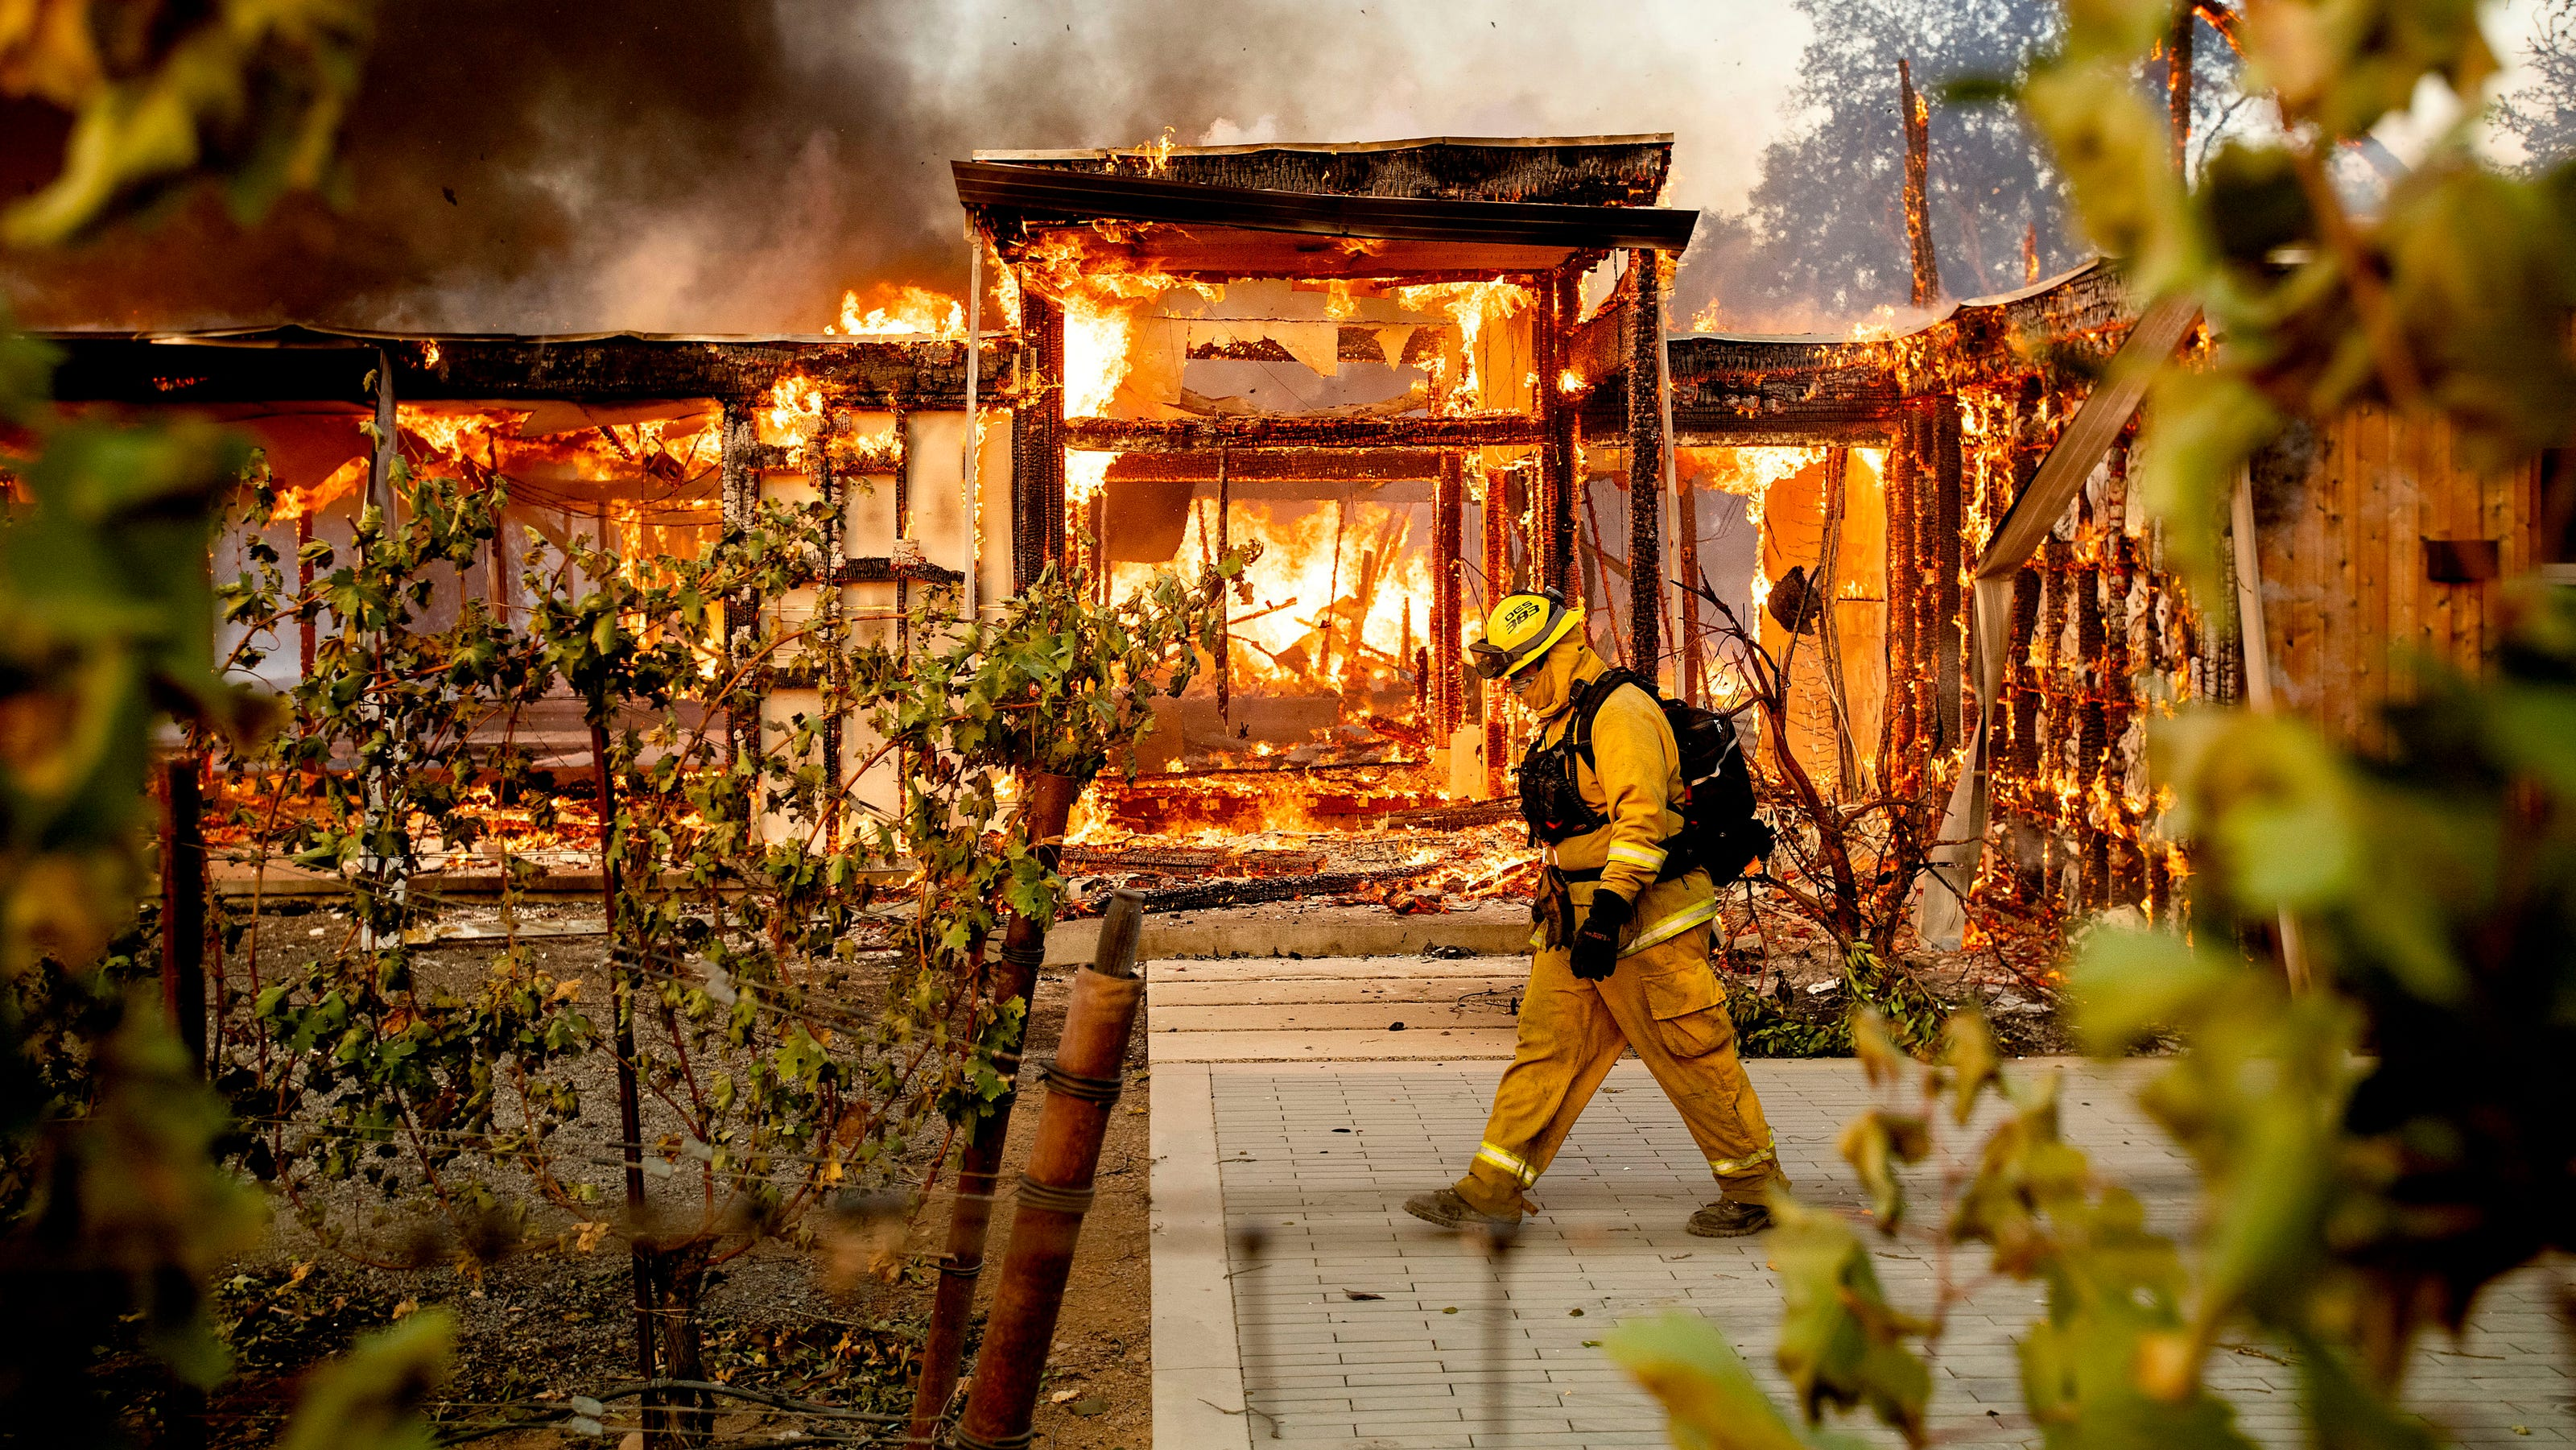 California Wildfire Kinkade Fire Pg E Blackouts Just One Frustration